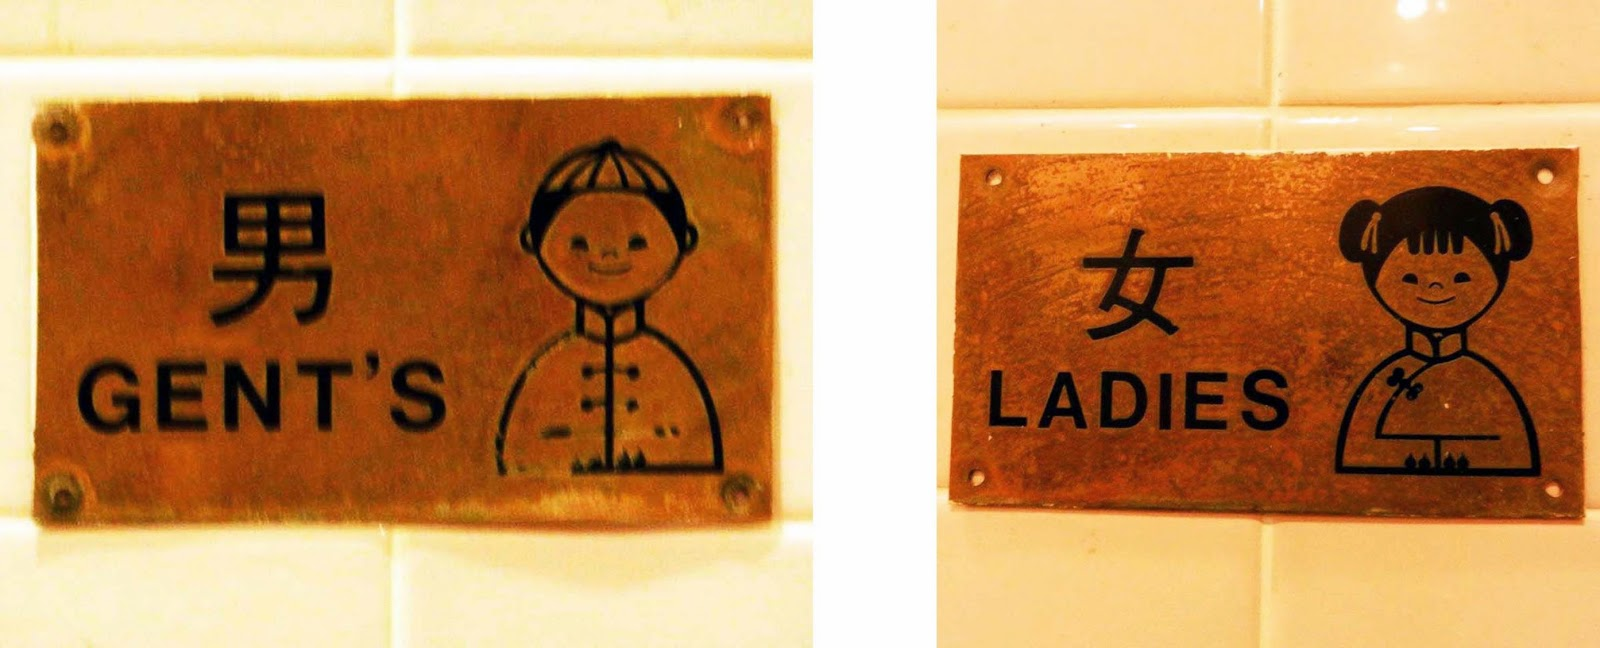 Bathroom Signs Restaurant bathroom signs from around the world: chinese cuisine - deluxe